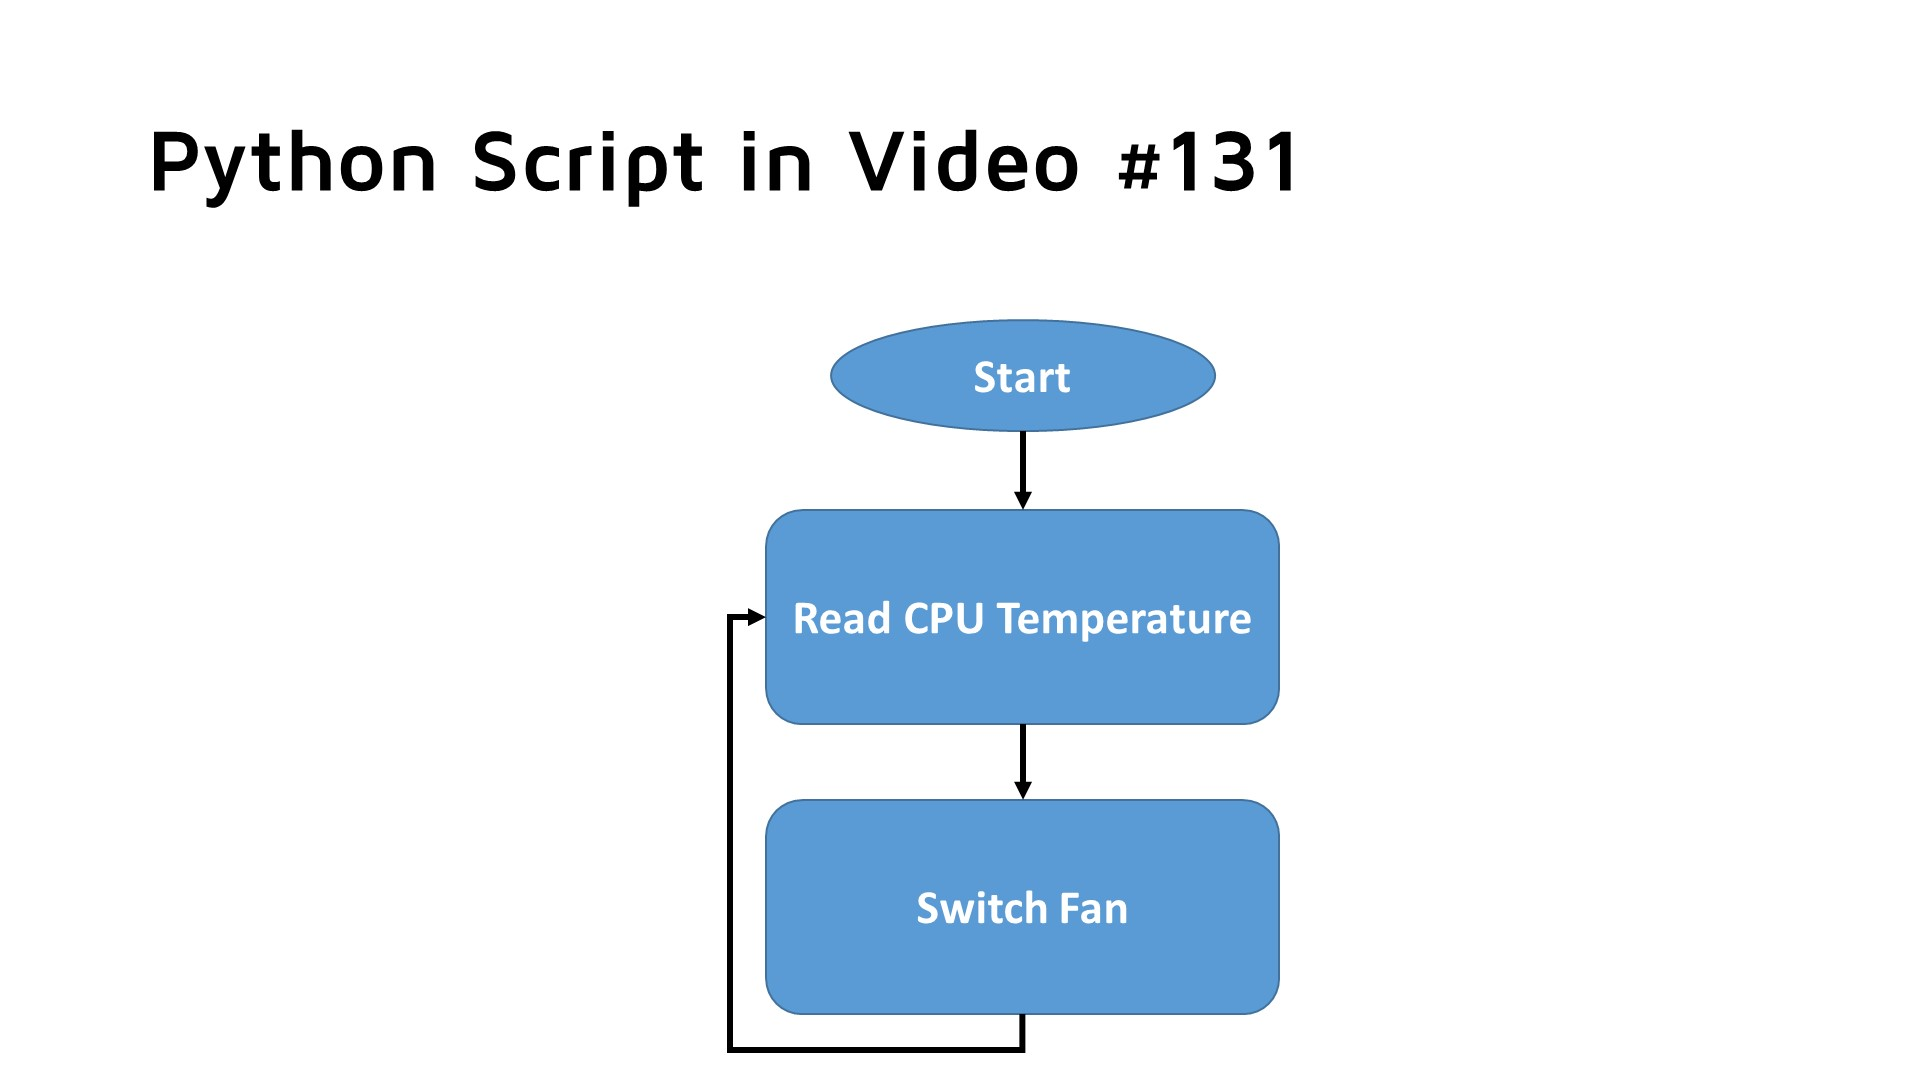 Variable Speed Cooling Fan for Raspberry Pi using PWM (video#138